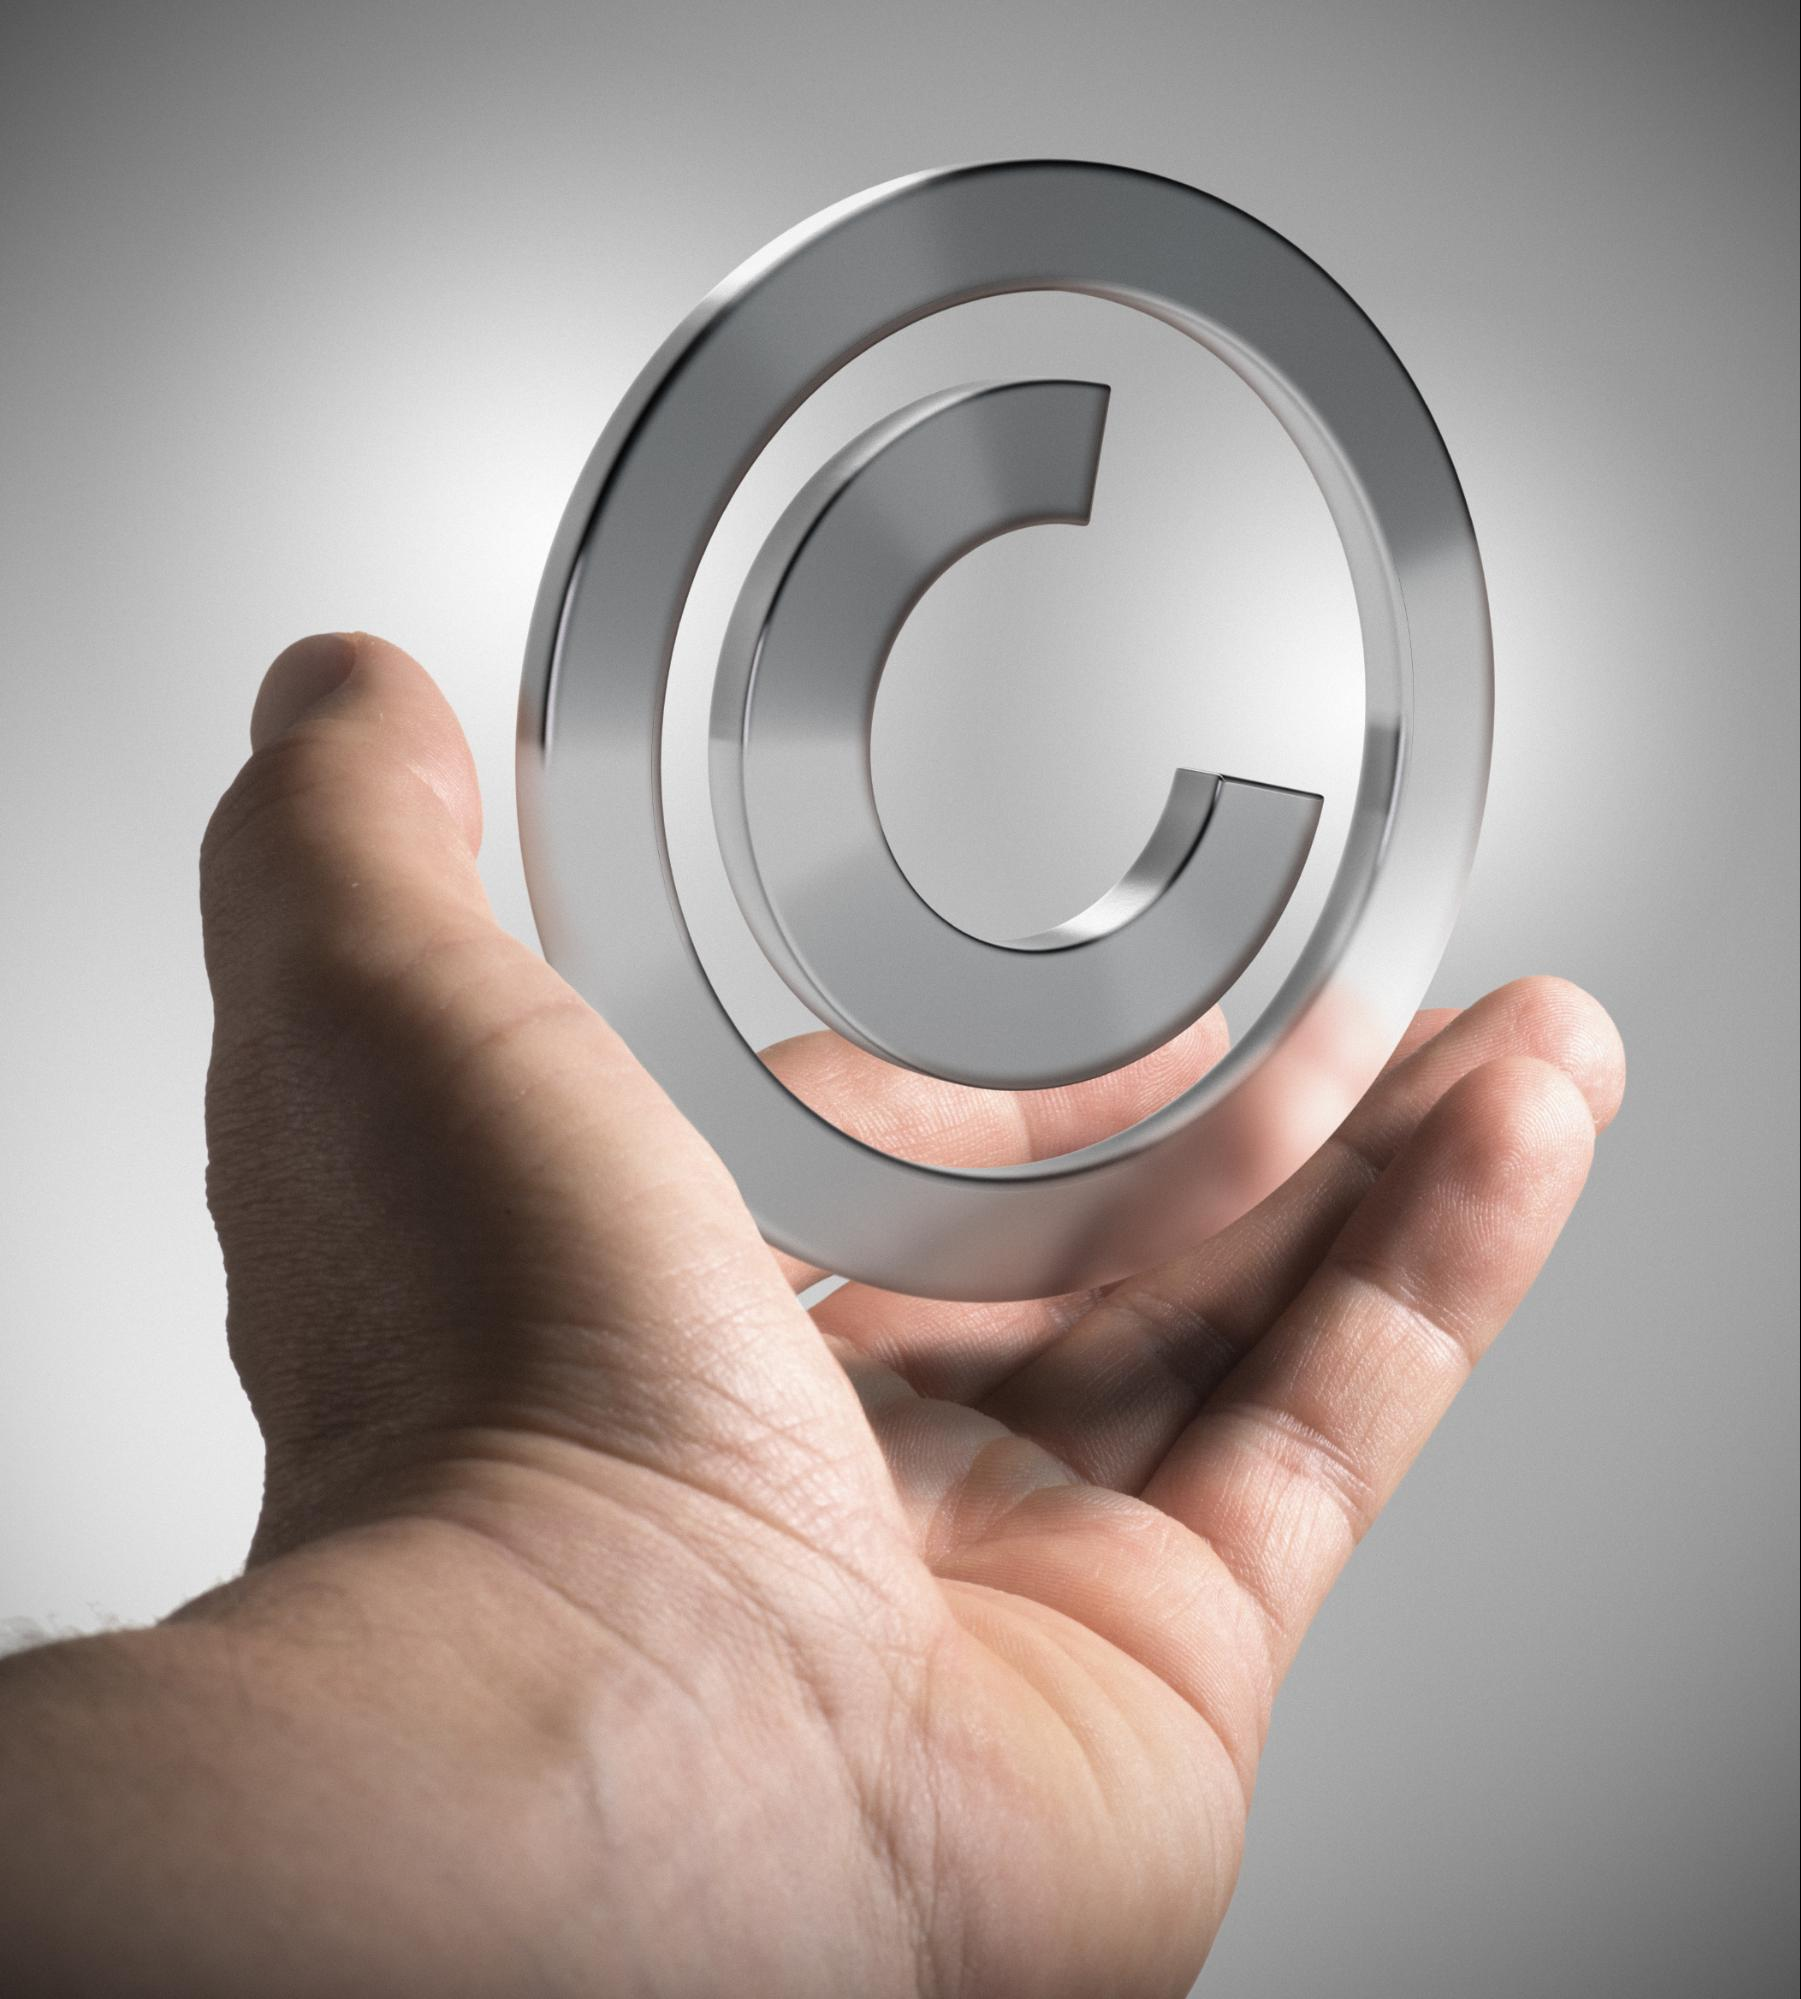 Copyright Law - 5 Common Myths About Copyright Law You Should Know